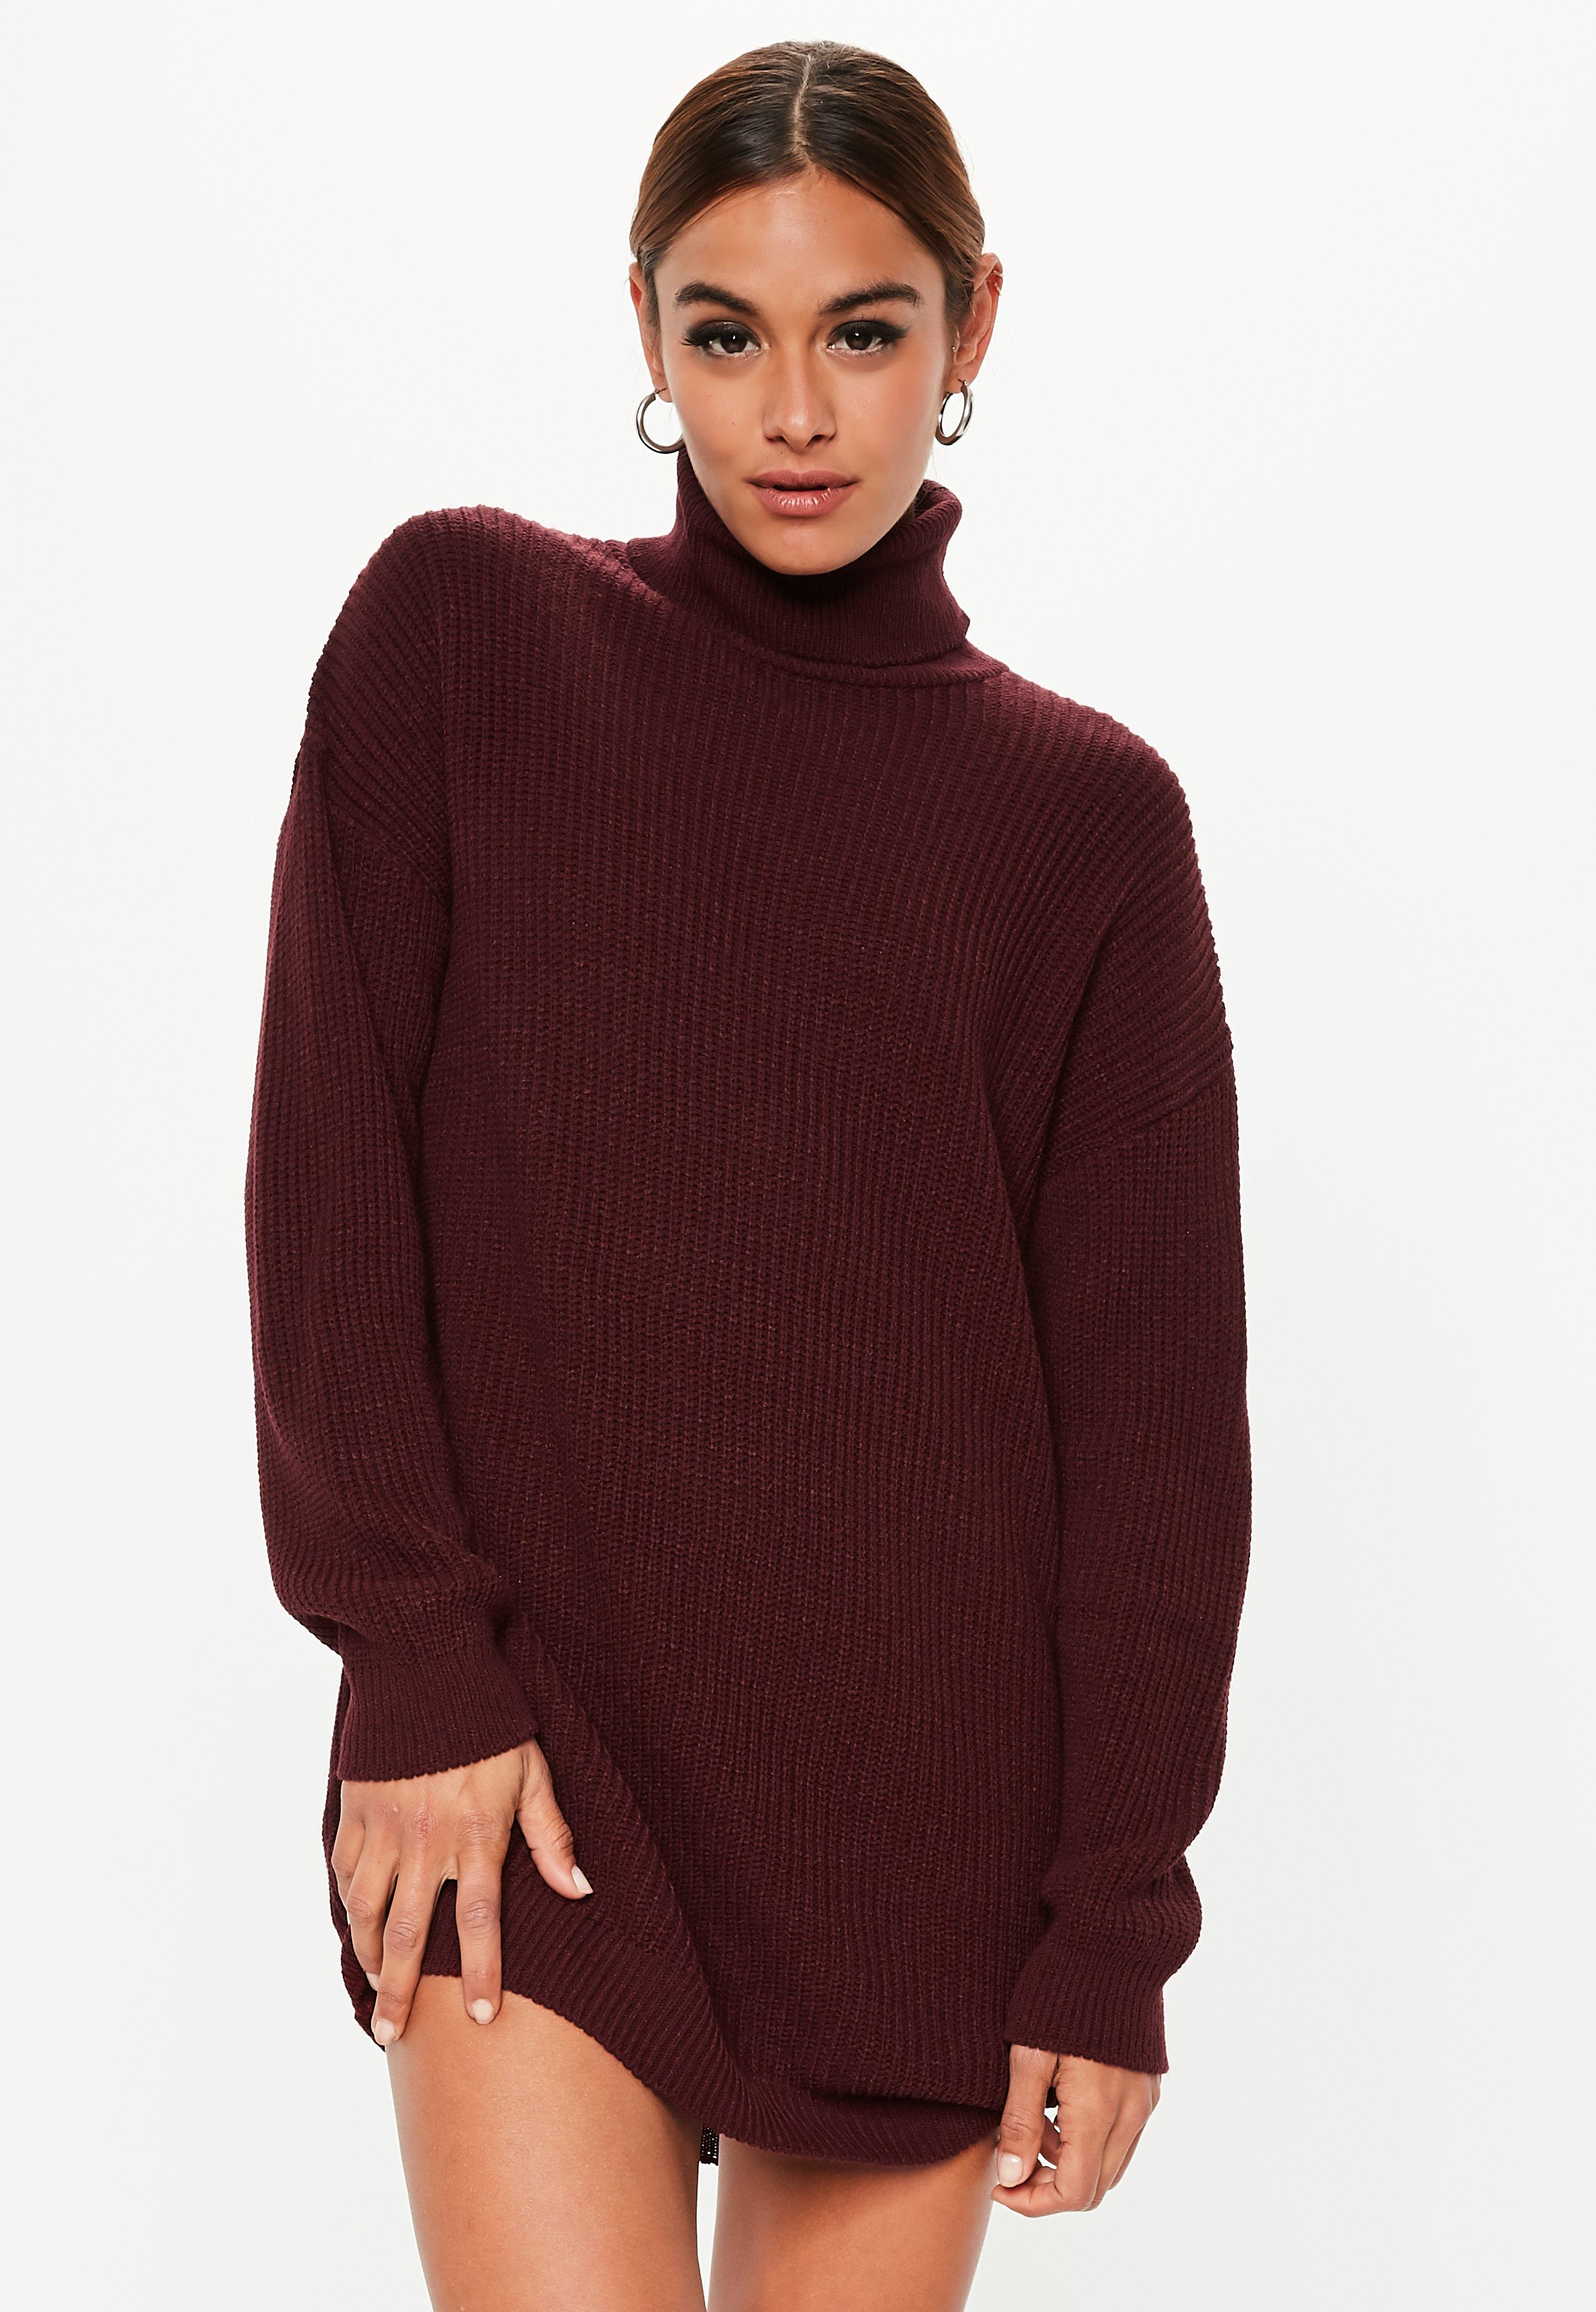 4805acba691 Sweater Dresses - Oversized Knitted Dresses